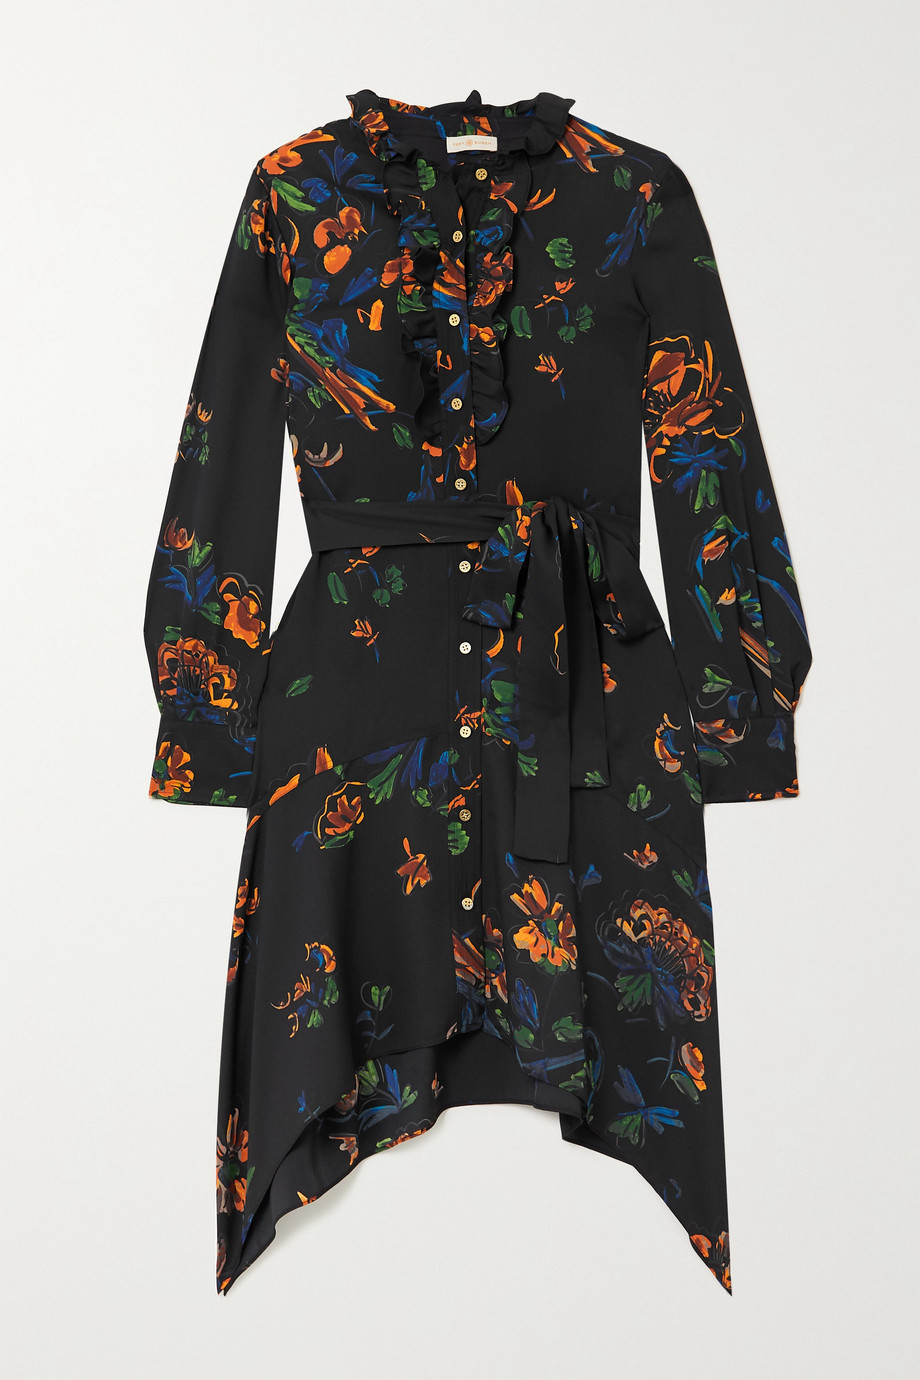 Tory Burch Cora belted ruffled floral-print crepe dress